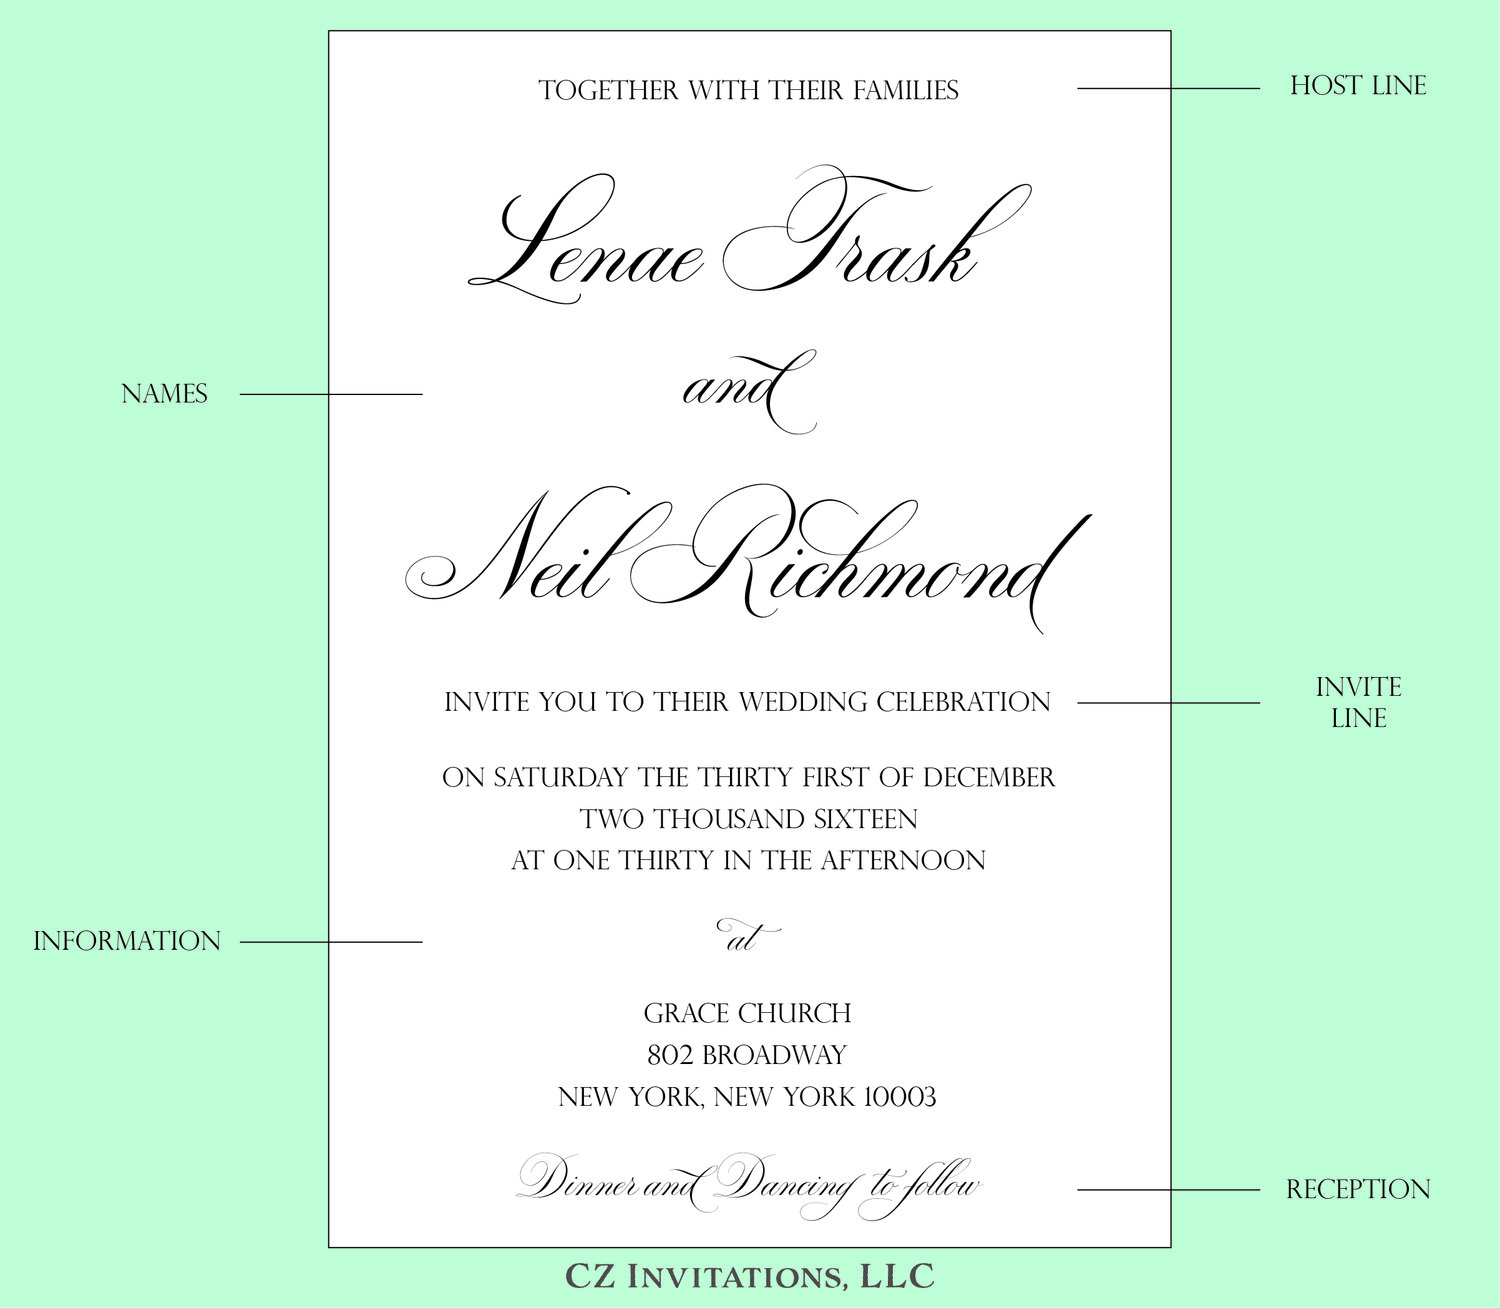 Words For Wedding Invites: How To: Wedding Invitation Wording